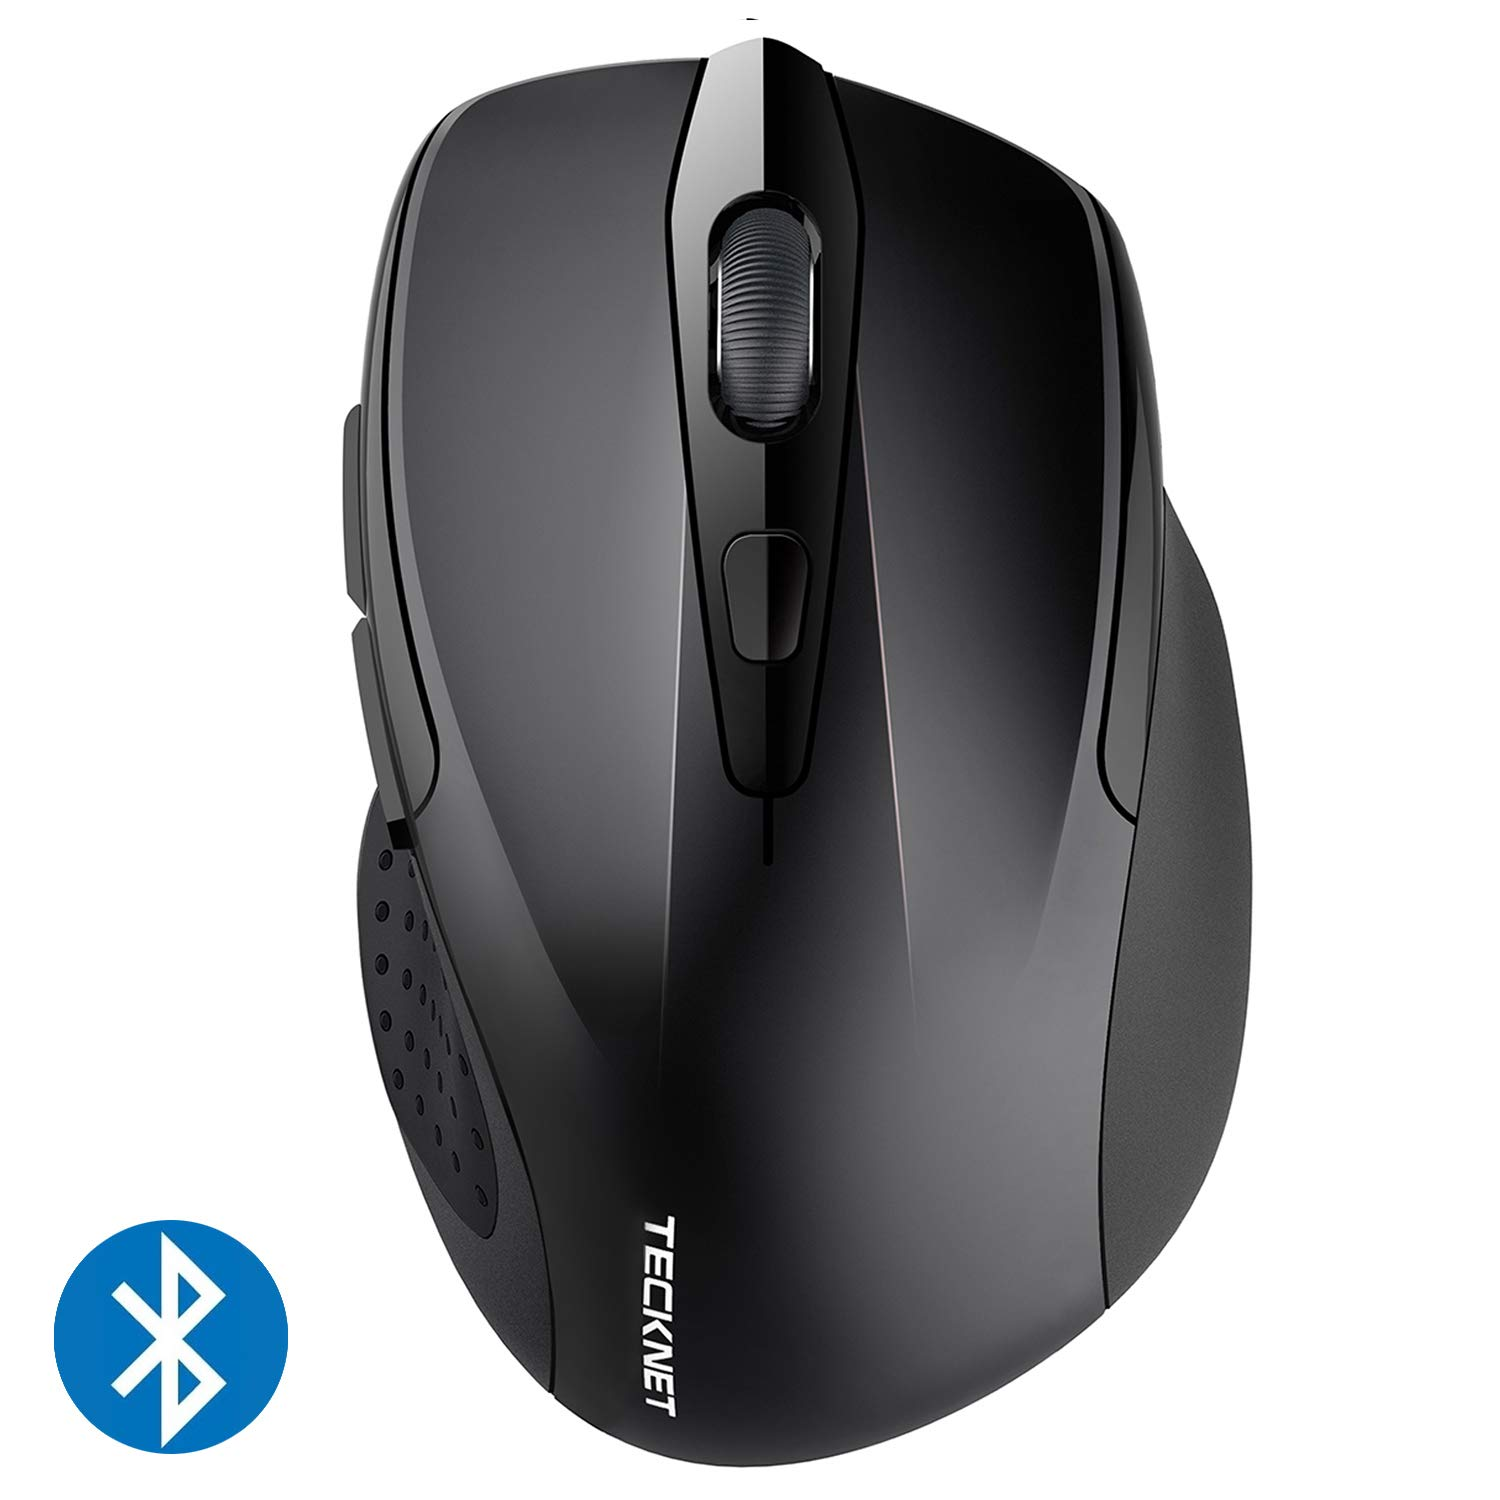 fefcdc1dcaf Amazon.com: TeckNet 2600DPI Bluetooth Wireless Mouse, 12 Months Battery  Life with Battery Indicator, 2600/2000/1600/1200/800DPI (Black): Computers  & ...